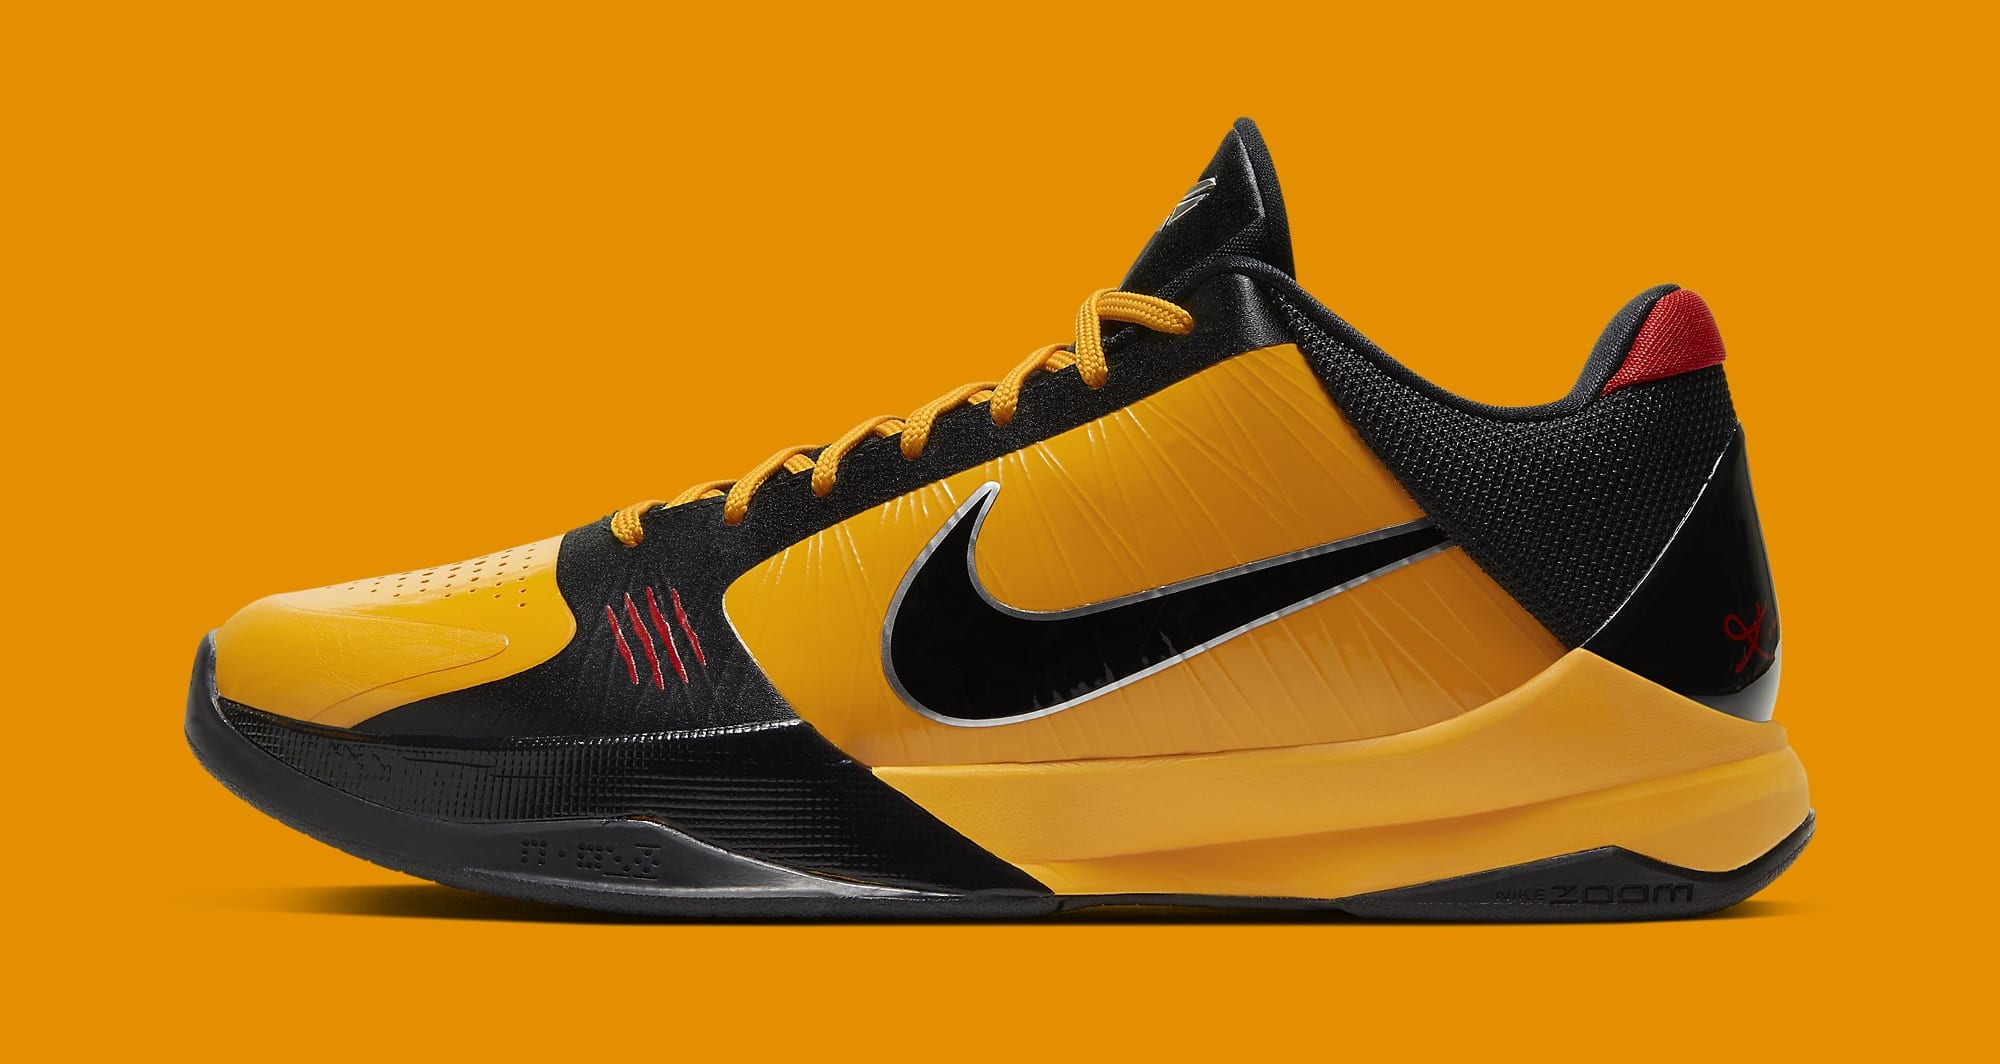 Nike Kobe 5 Protro 'Bruce Lee' CD4991-700 Lateral